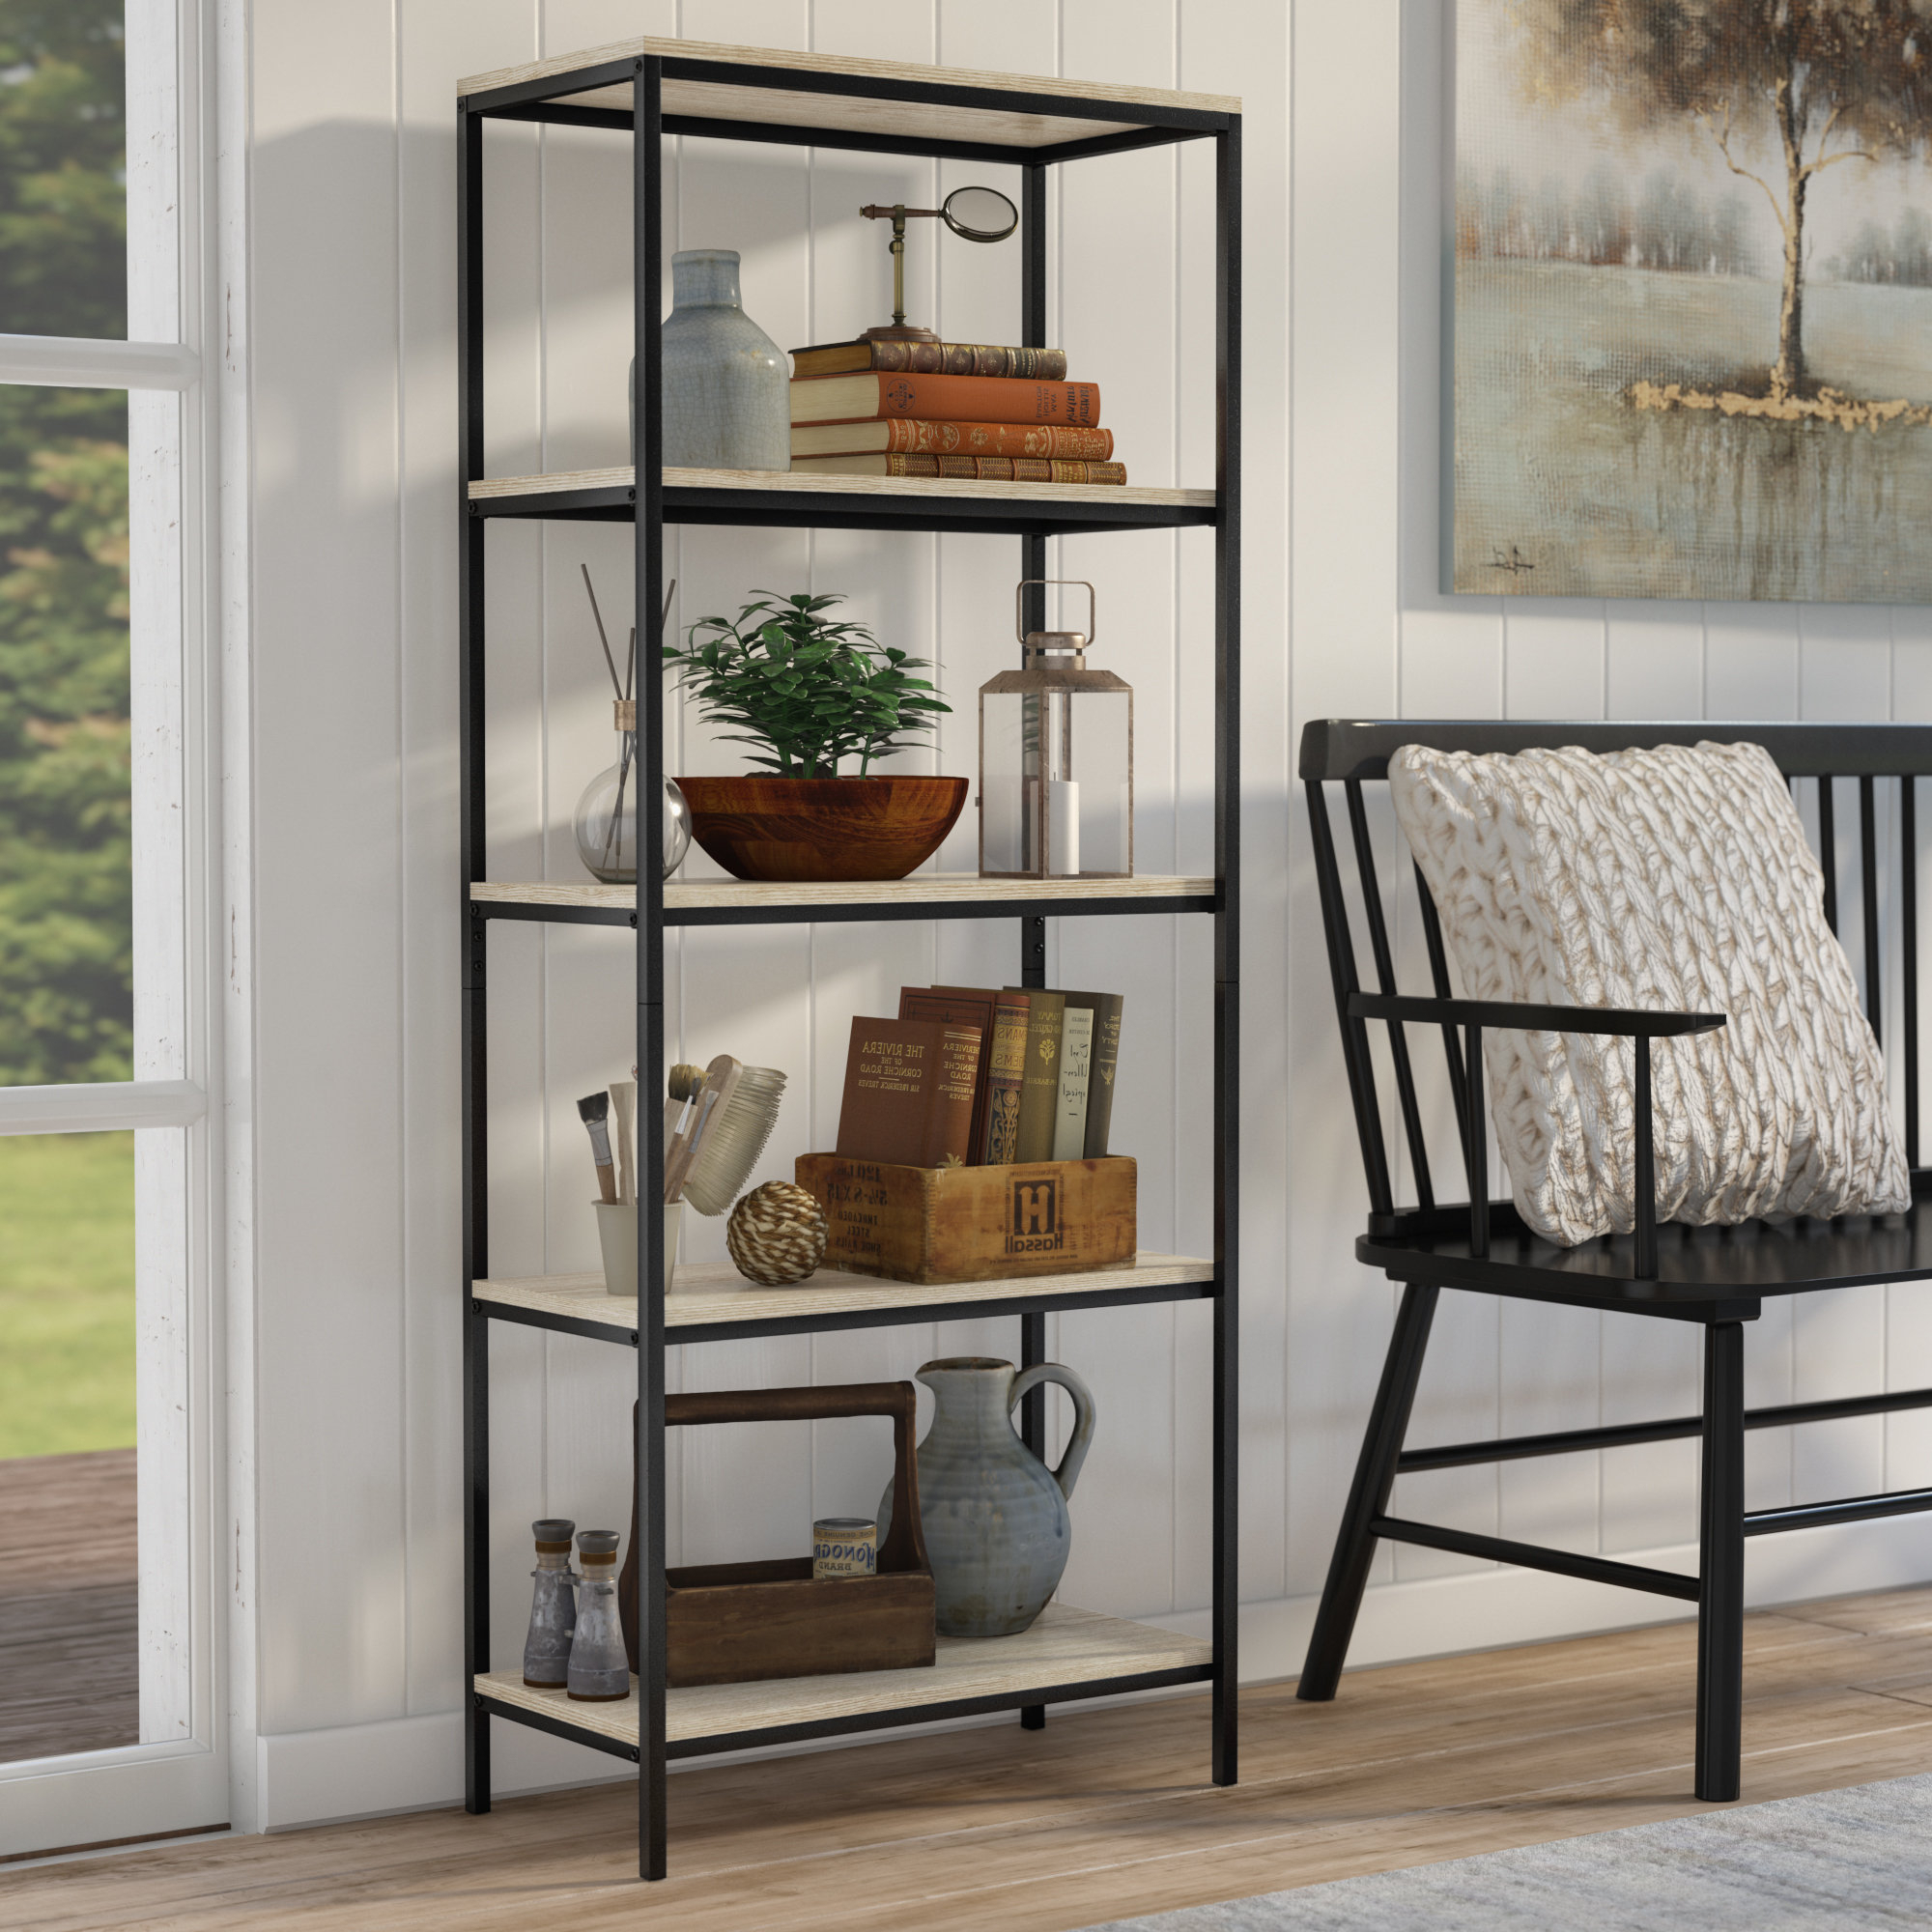 Ermont Etagere Bookcases In Latest Ermont Etagere Bookcase (Gallery 1 of 20)